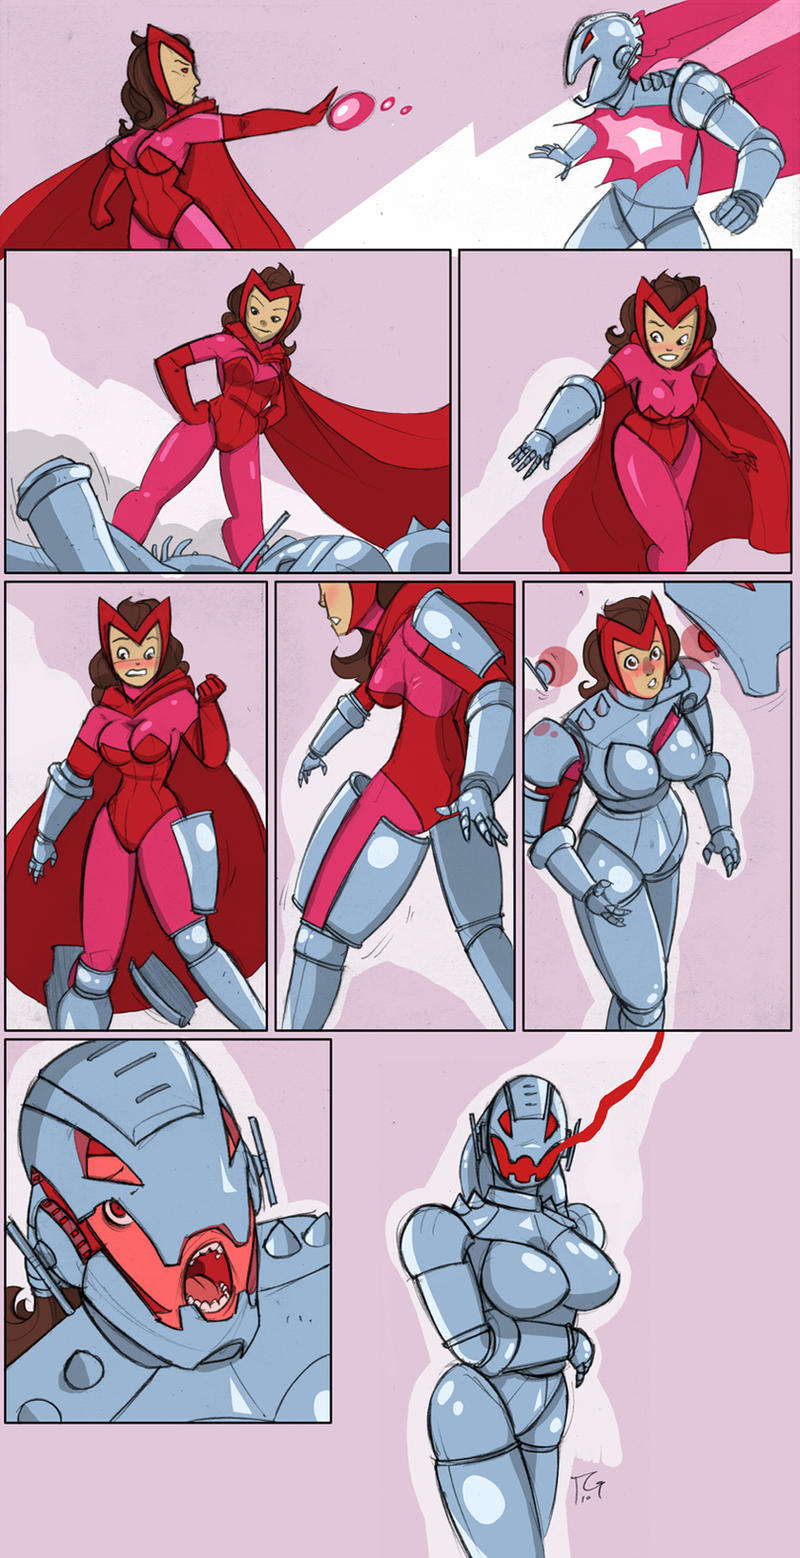 fall of Wanda by blackshirtboy by singory on DeviantArt